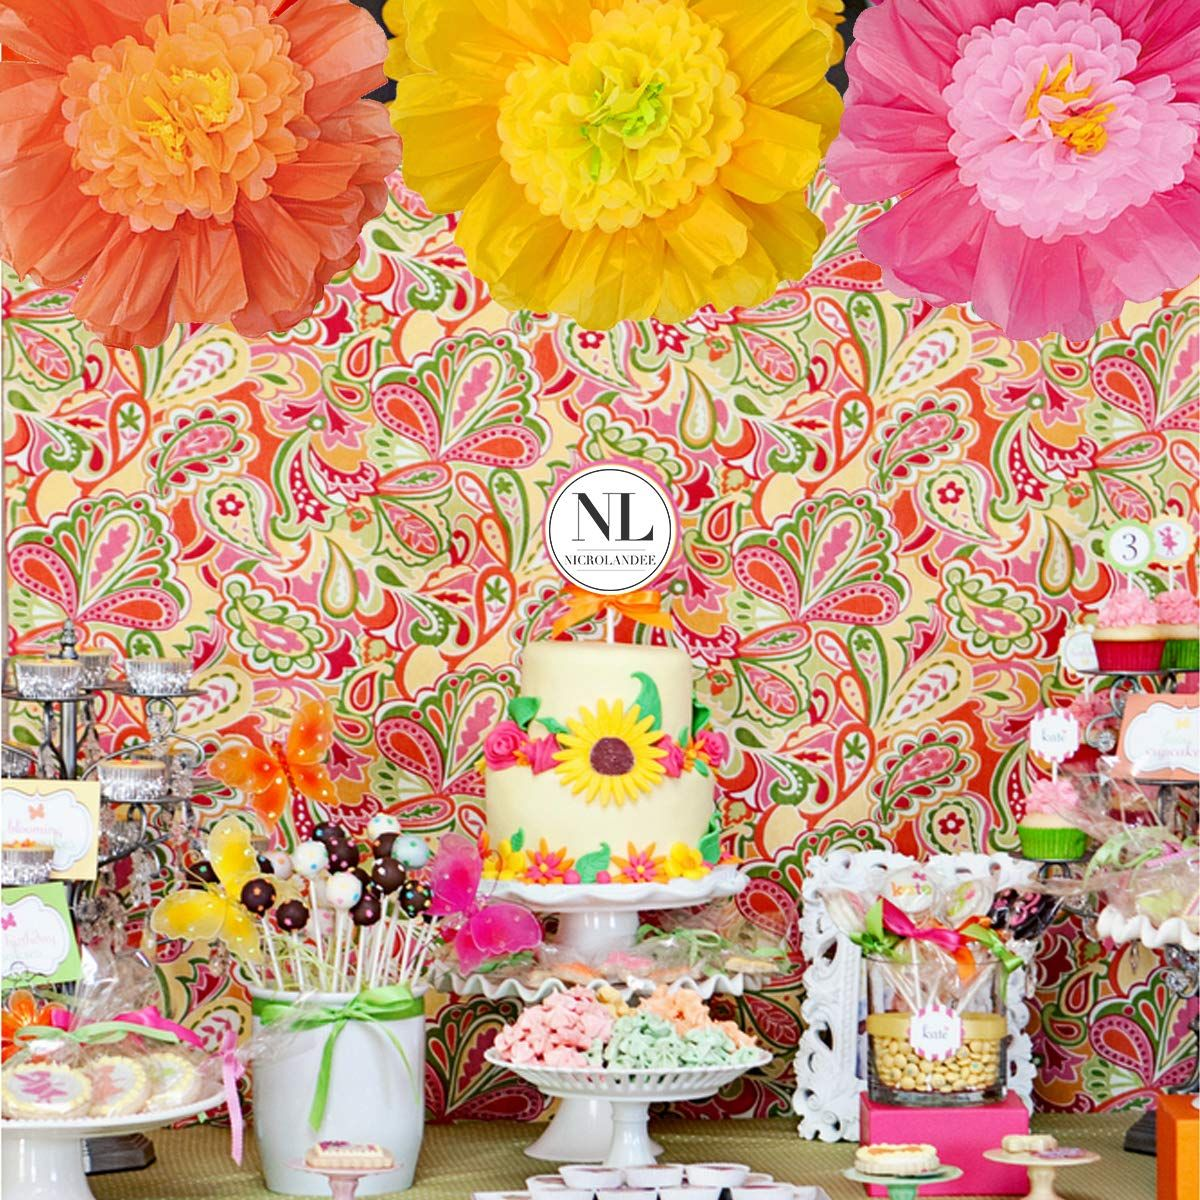 Nicrolandee 24 6 Pack Set Large Tissue Paper Flowers Handcrafted